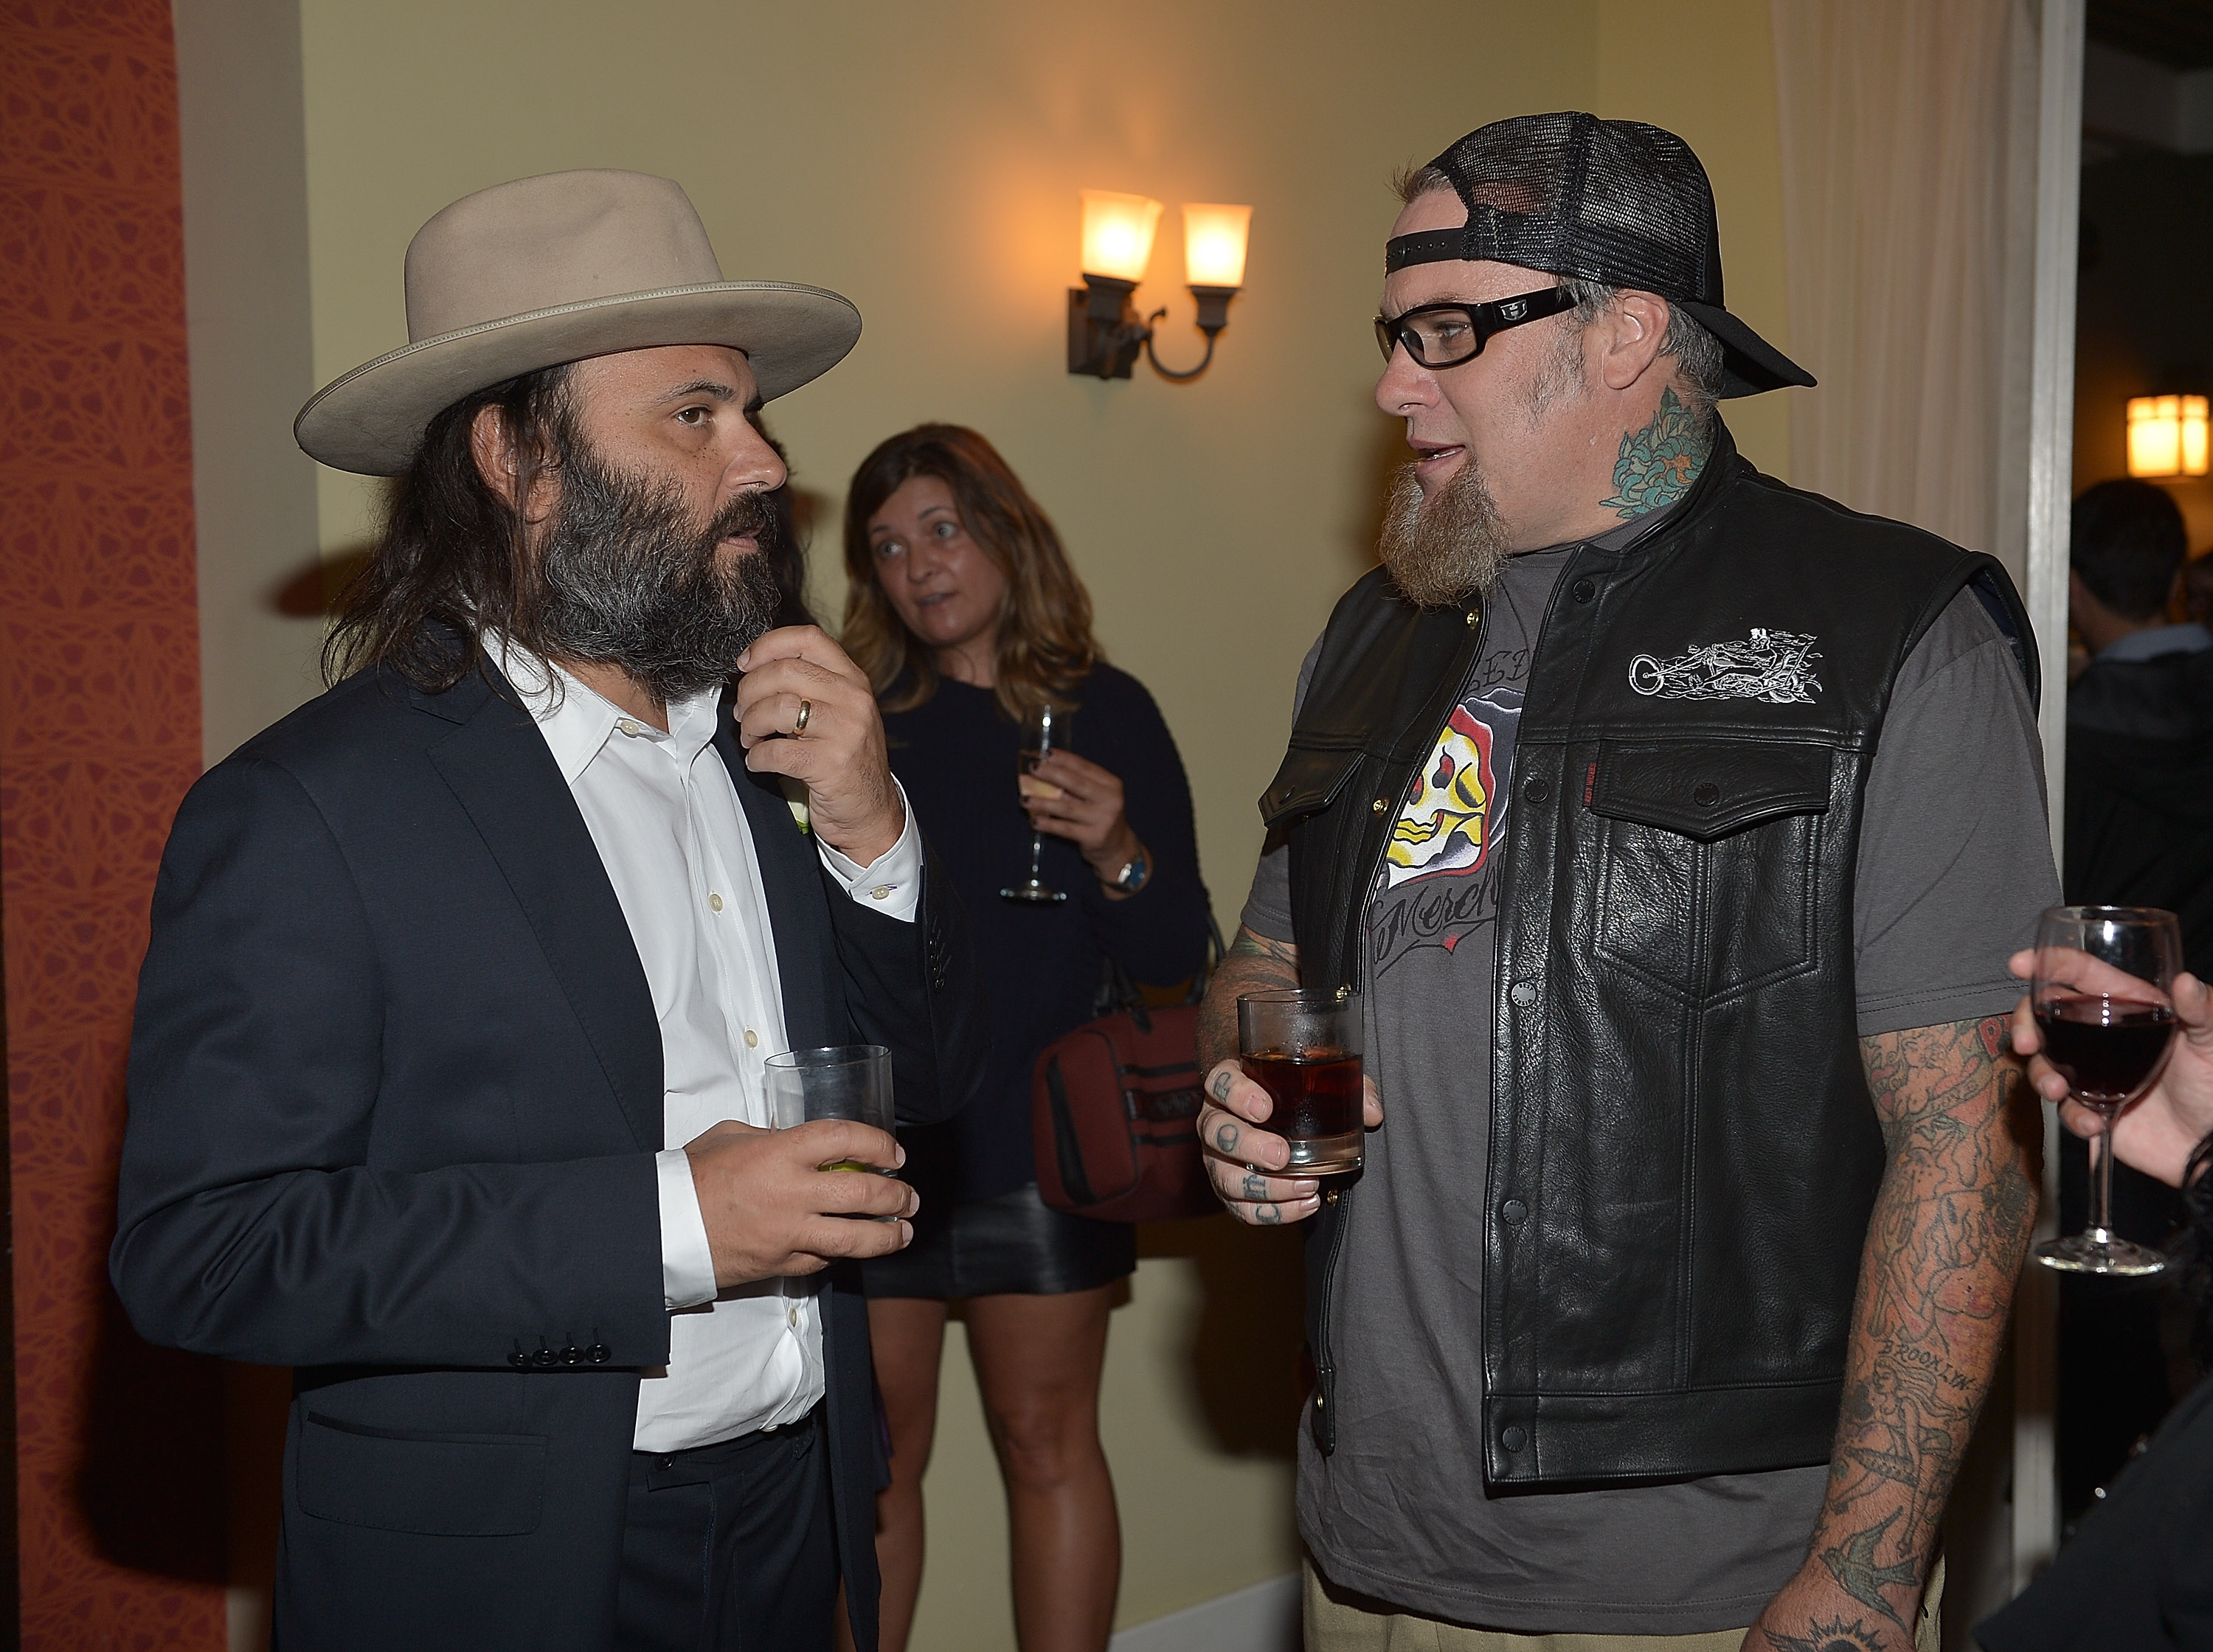 Erik Brunetti (L) attends Erik Brunetti's FUCT Book Release Party at Chateau Marmont on September 18, 2013 in Los Angeles, California. (Charley Gallay/Getty Images for RVCA)